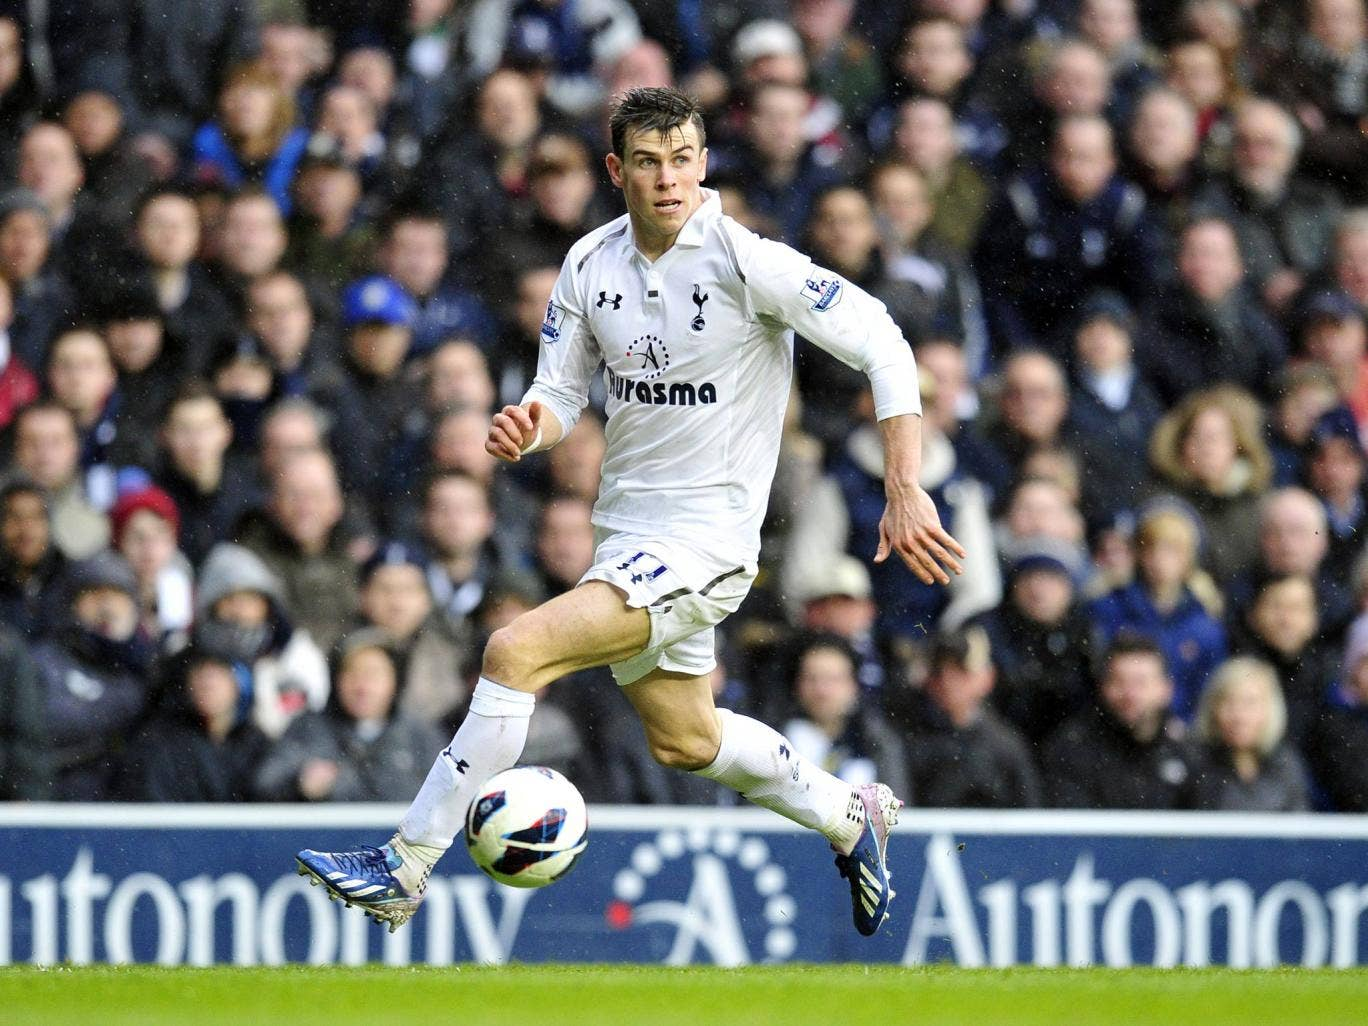 Having Gareth Bale among their ranks will do Tottenham no harm